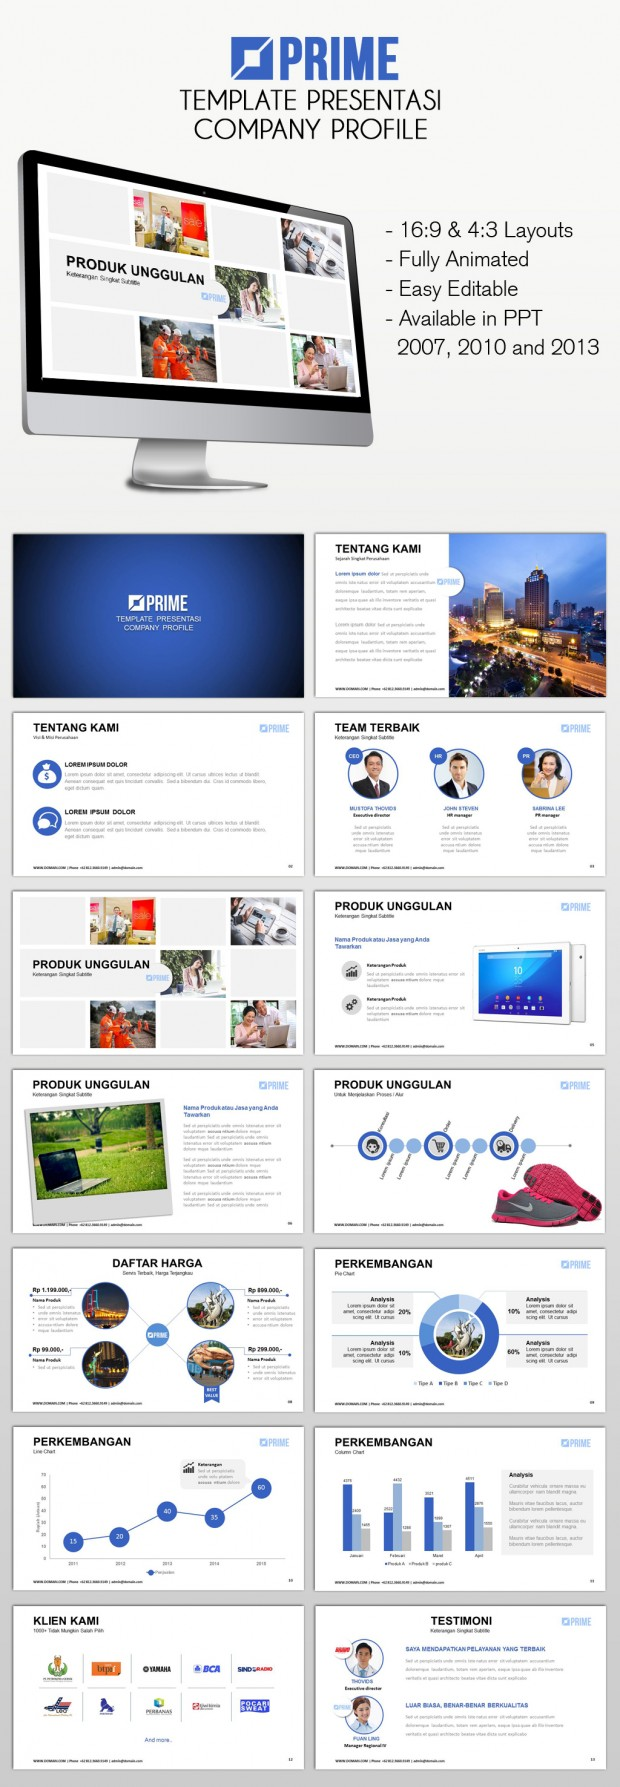 Template Powerpoint Presentasi Company Profile